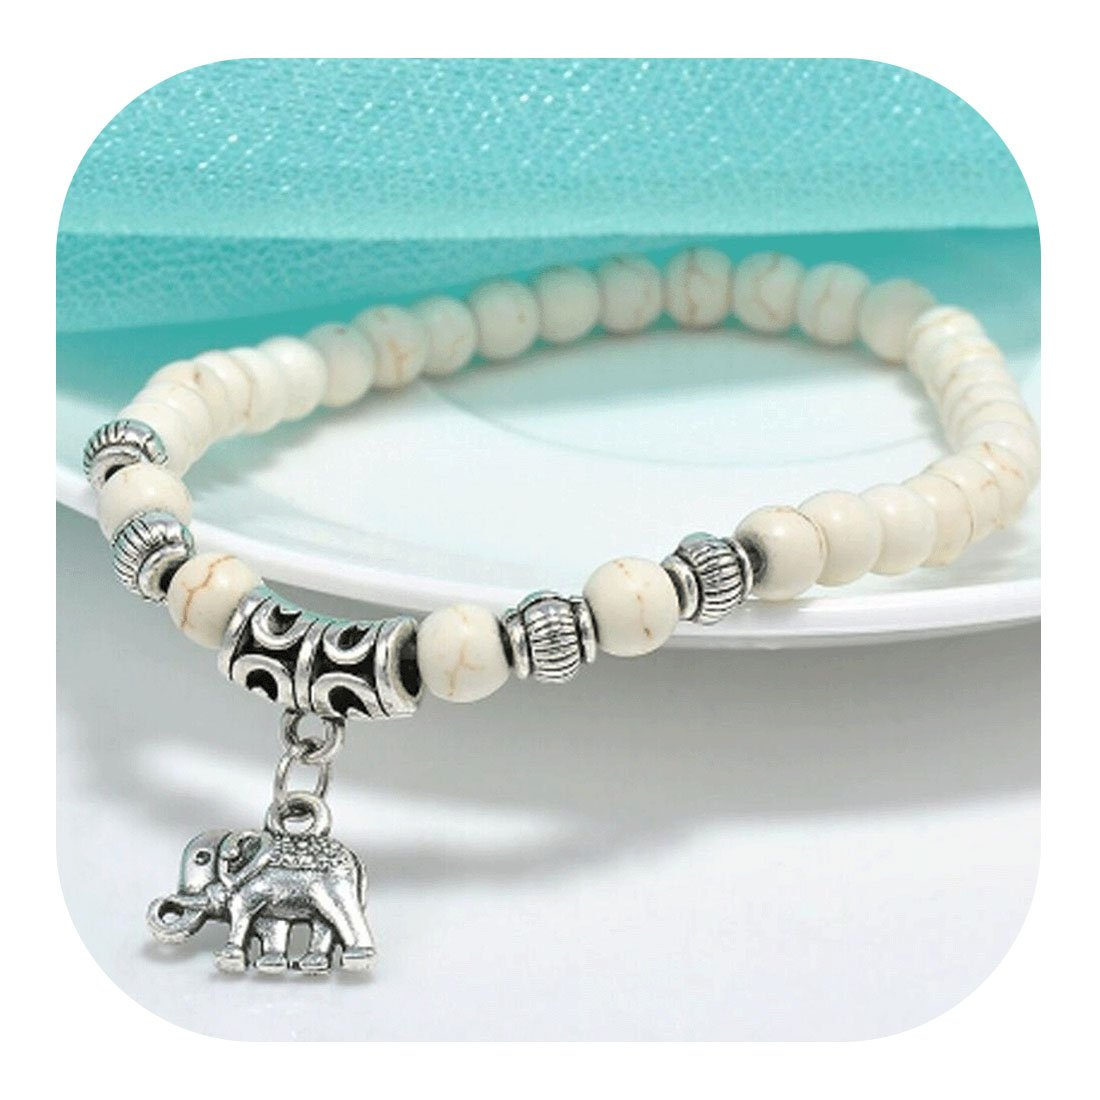 Molyveva Indian White Beads Stretch Bracelets Vintage Alloy Whisper/Holy Fire/Asian Elephant Bracelets (Asian Elephant)